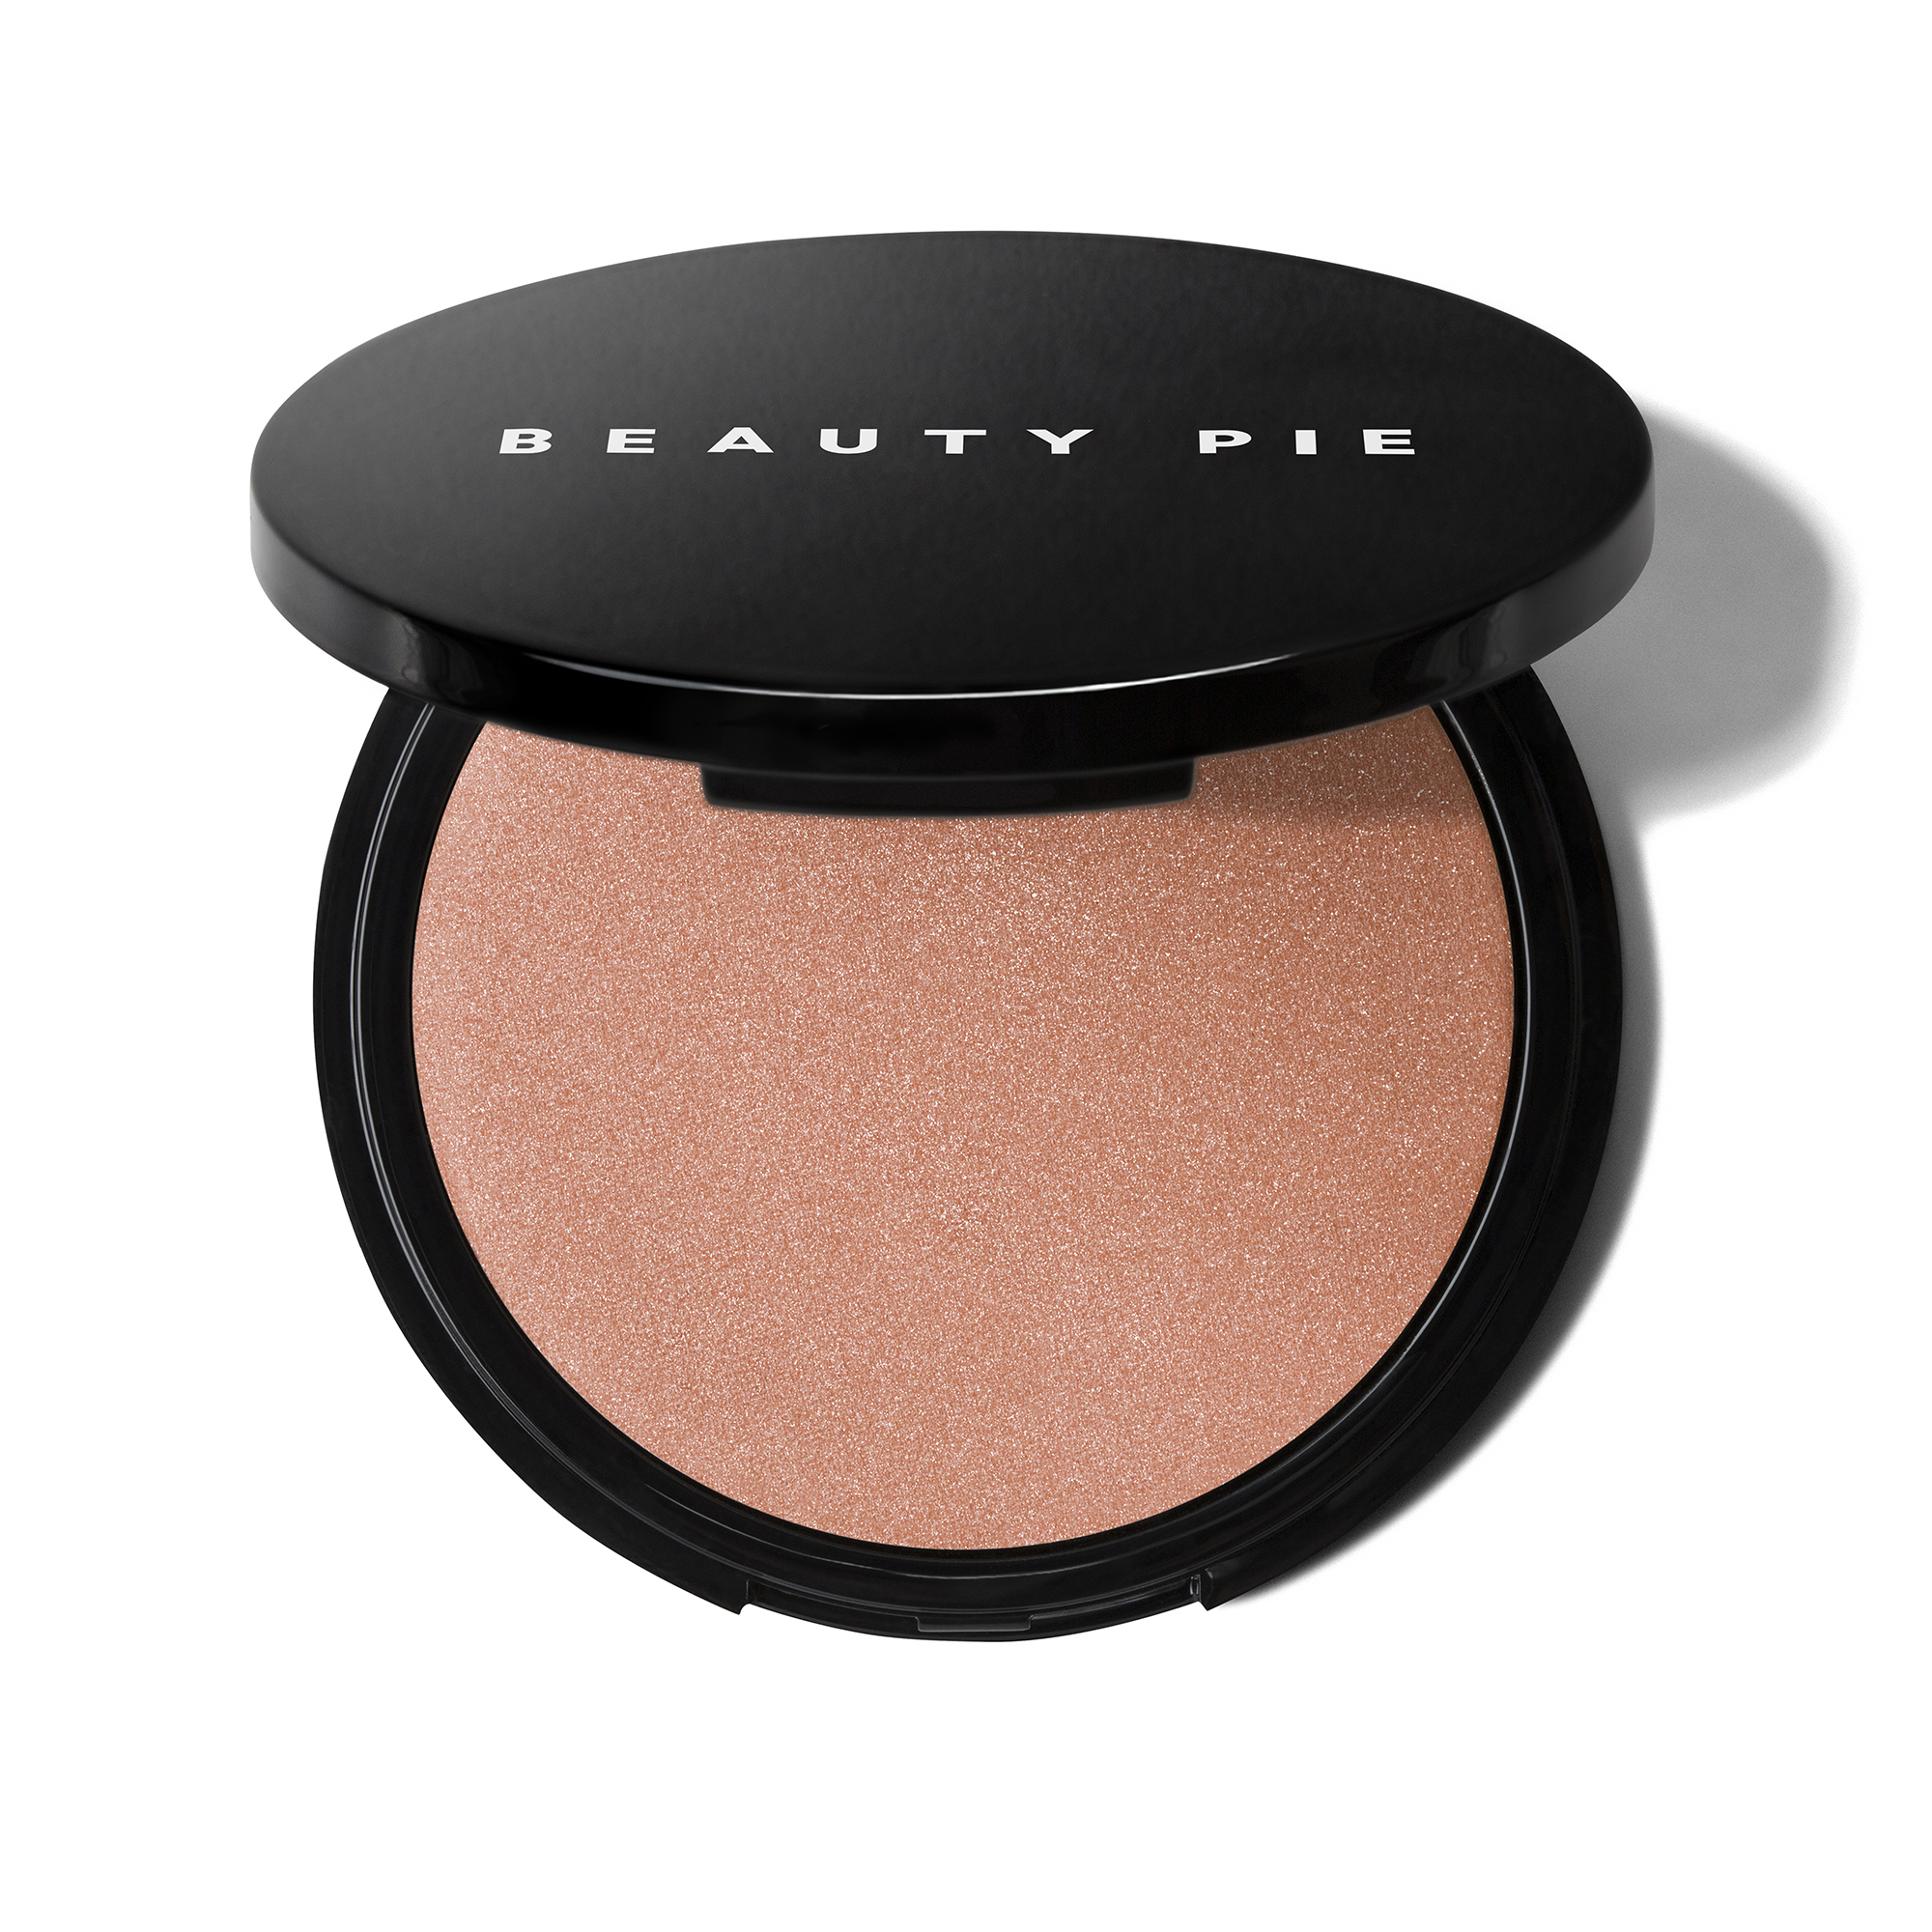 Image for Moonlighting Radiance Powder from BeautyPie US